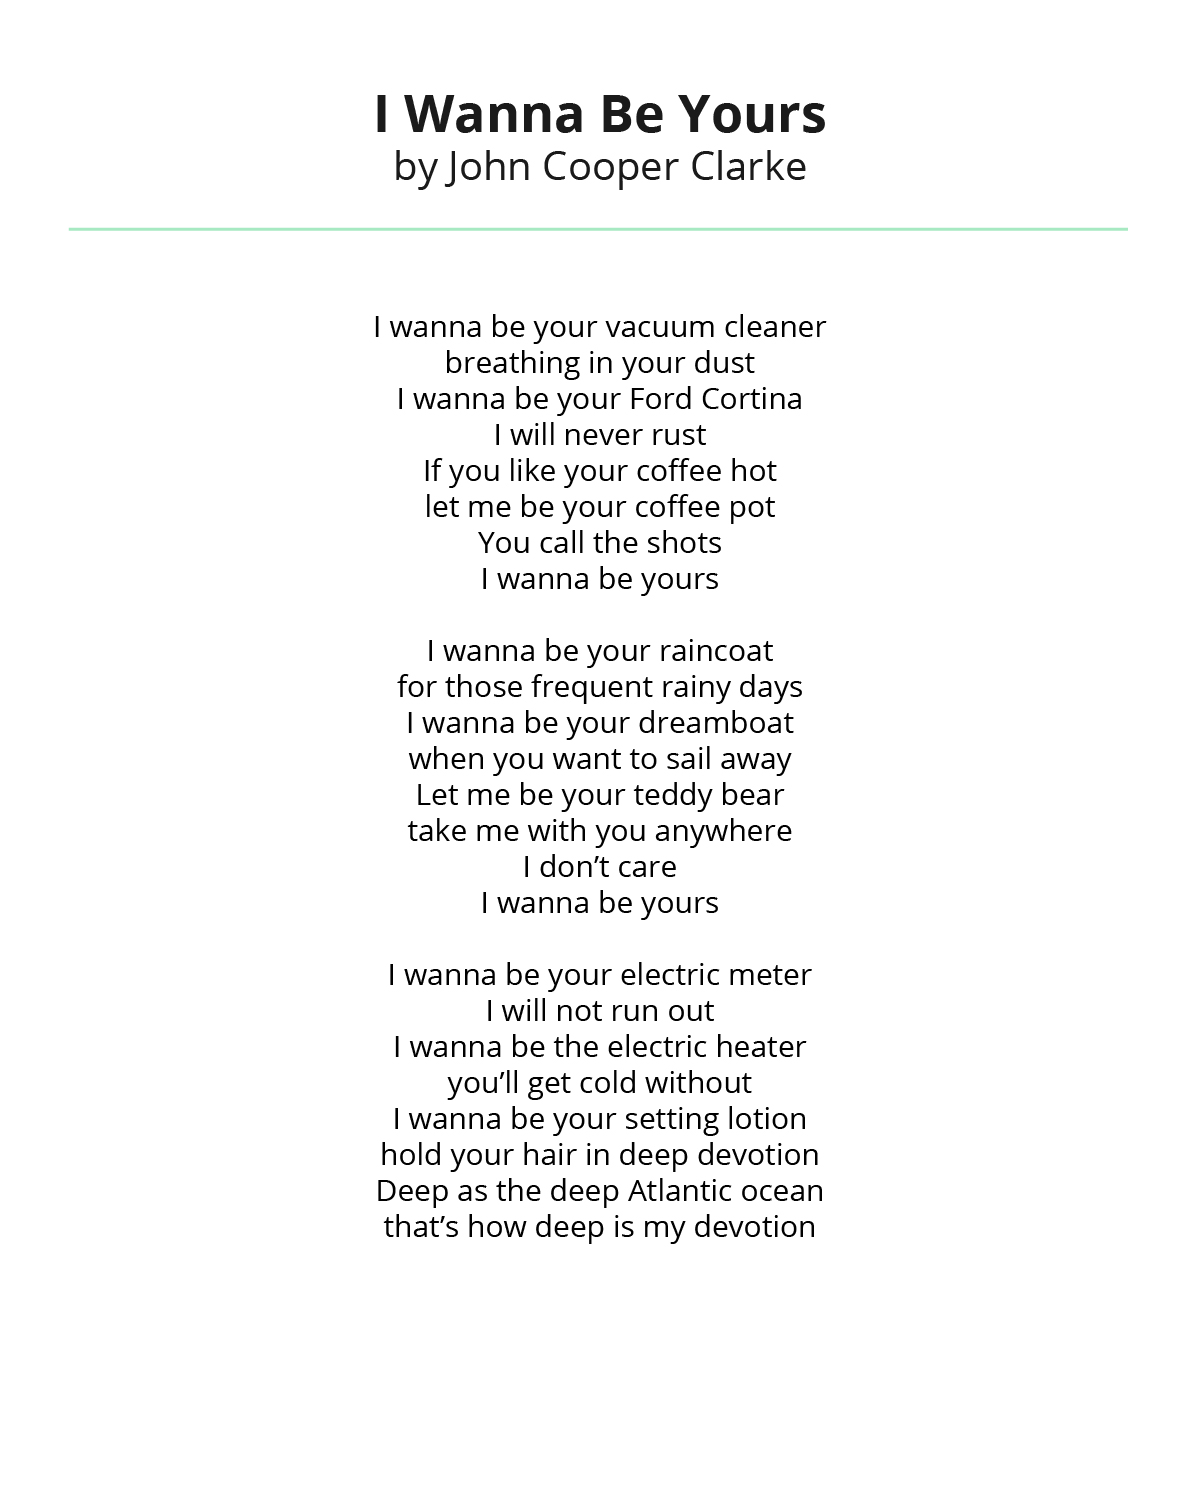 I Wanna Be Yours by John Copper Clarke